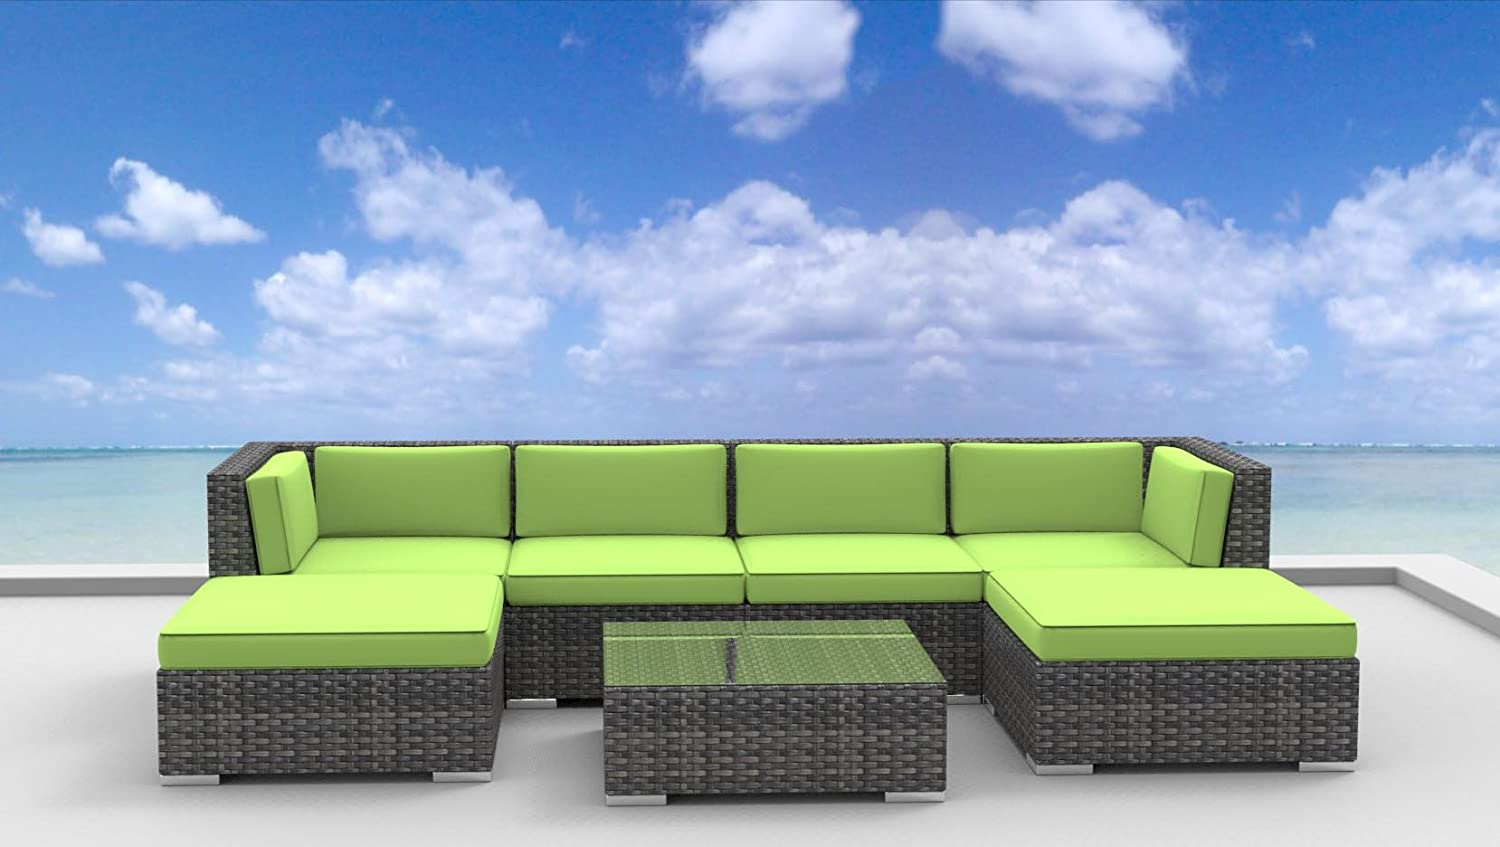 UrbanFurnishing.net - MAUI 7pc Modern Outdoor Backyard Wicker Rattan Patio Furniture Sofa Sectional Couch Set at Sears.com